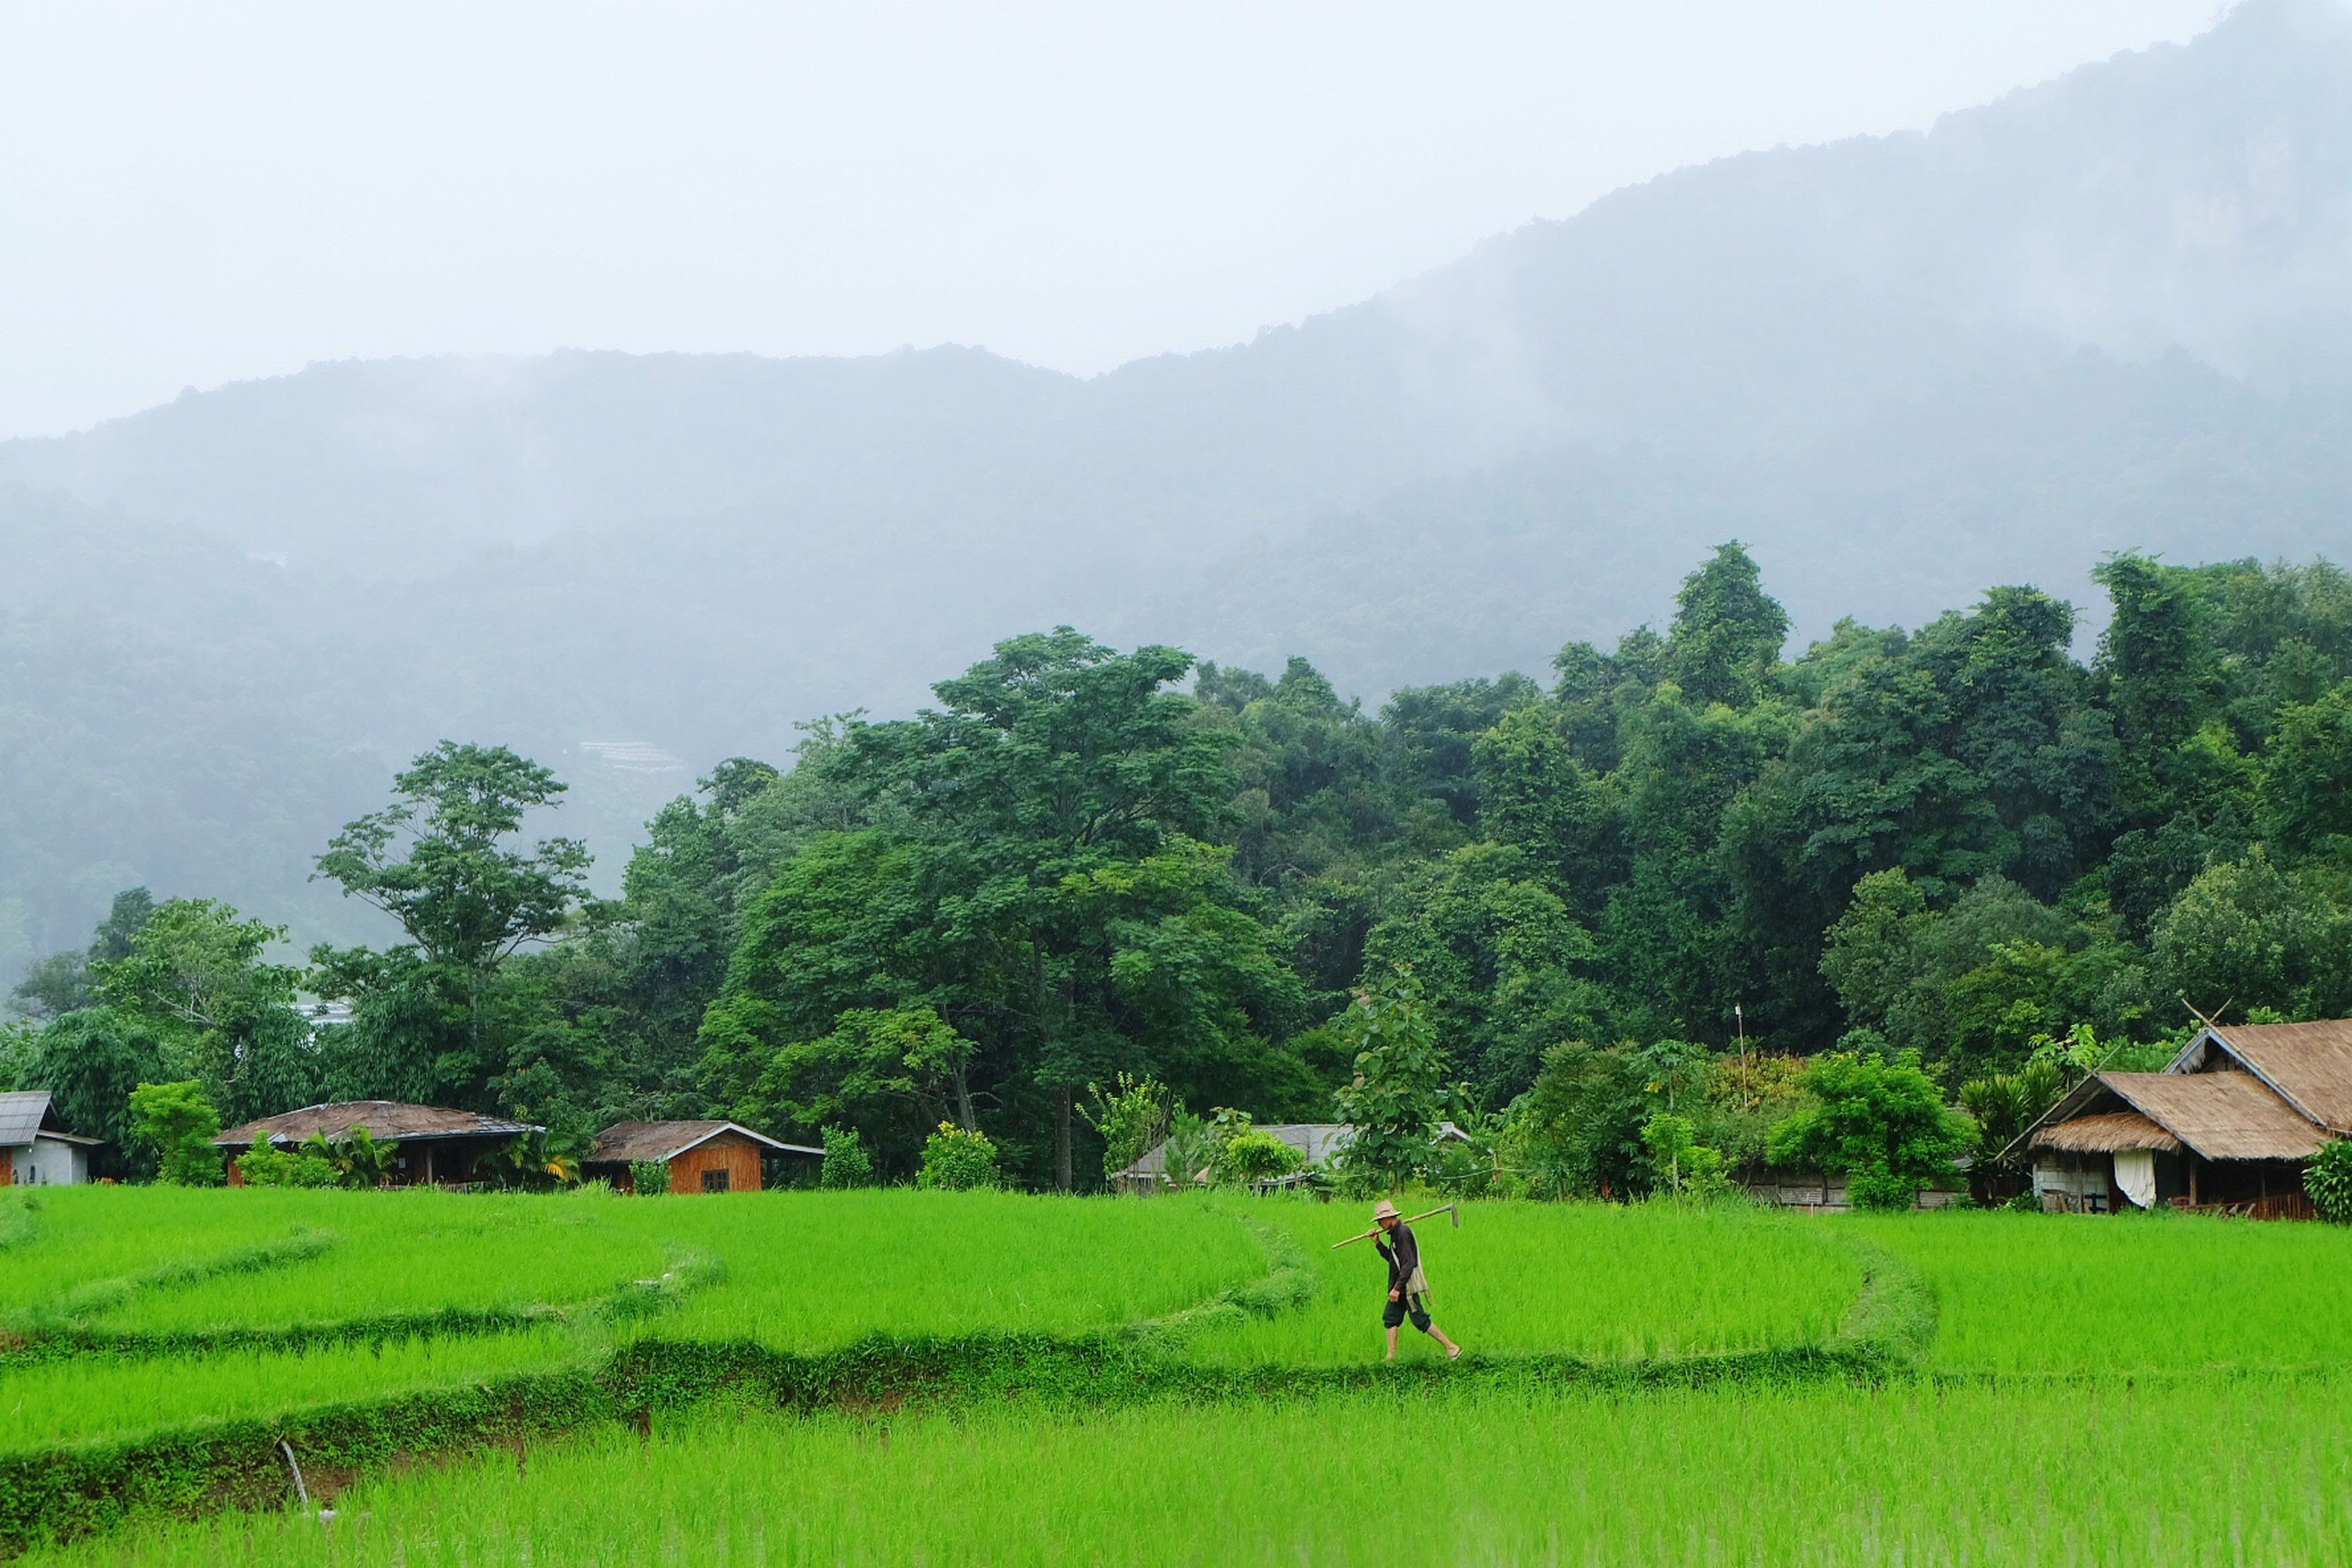 tree, growth, grass, field, scenics, agriculture, tranquility, green color, mountain, landscape, beauty in nature, house, green, nature, tranquil scene, architecture, day, built structure, one person, building exterior, real people, outdoors, men, rural scene, rice paddy, sky, people